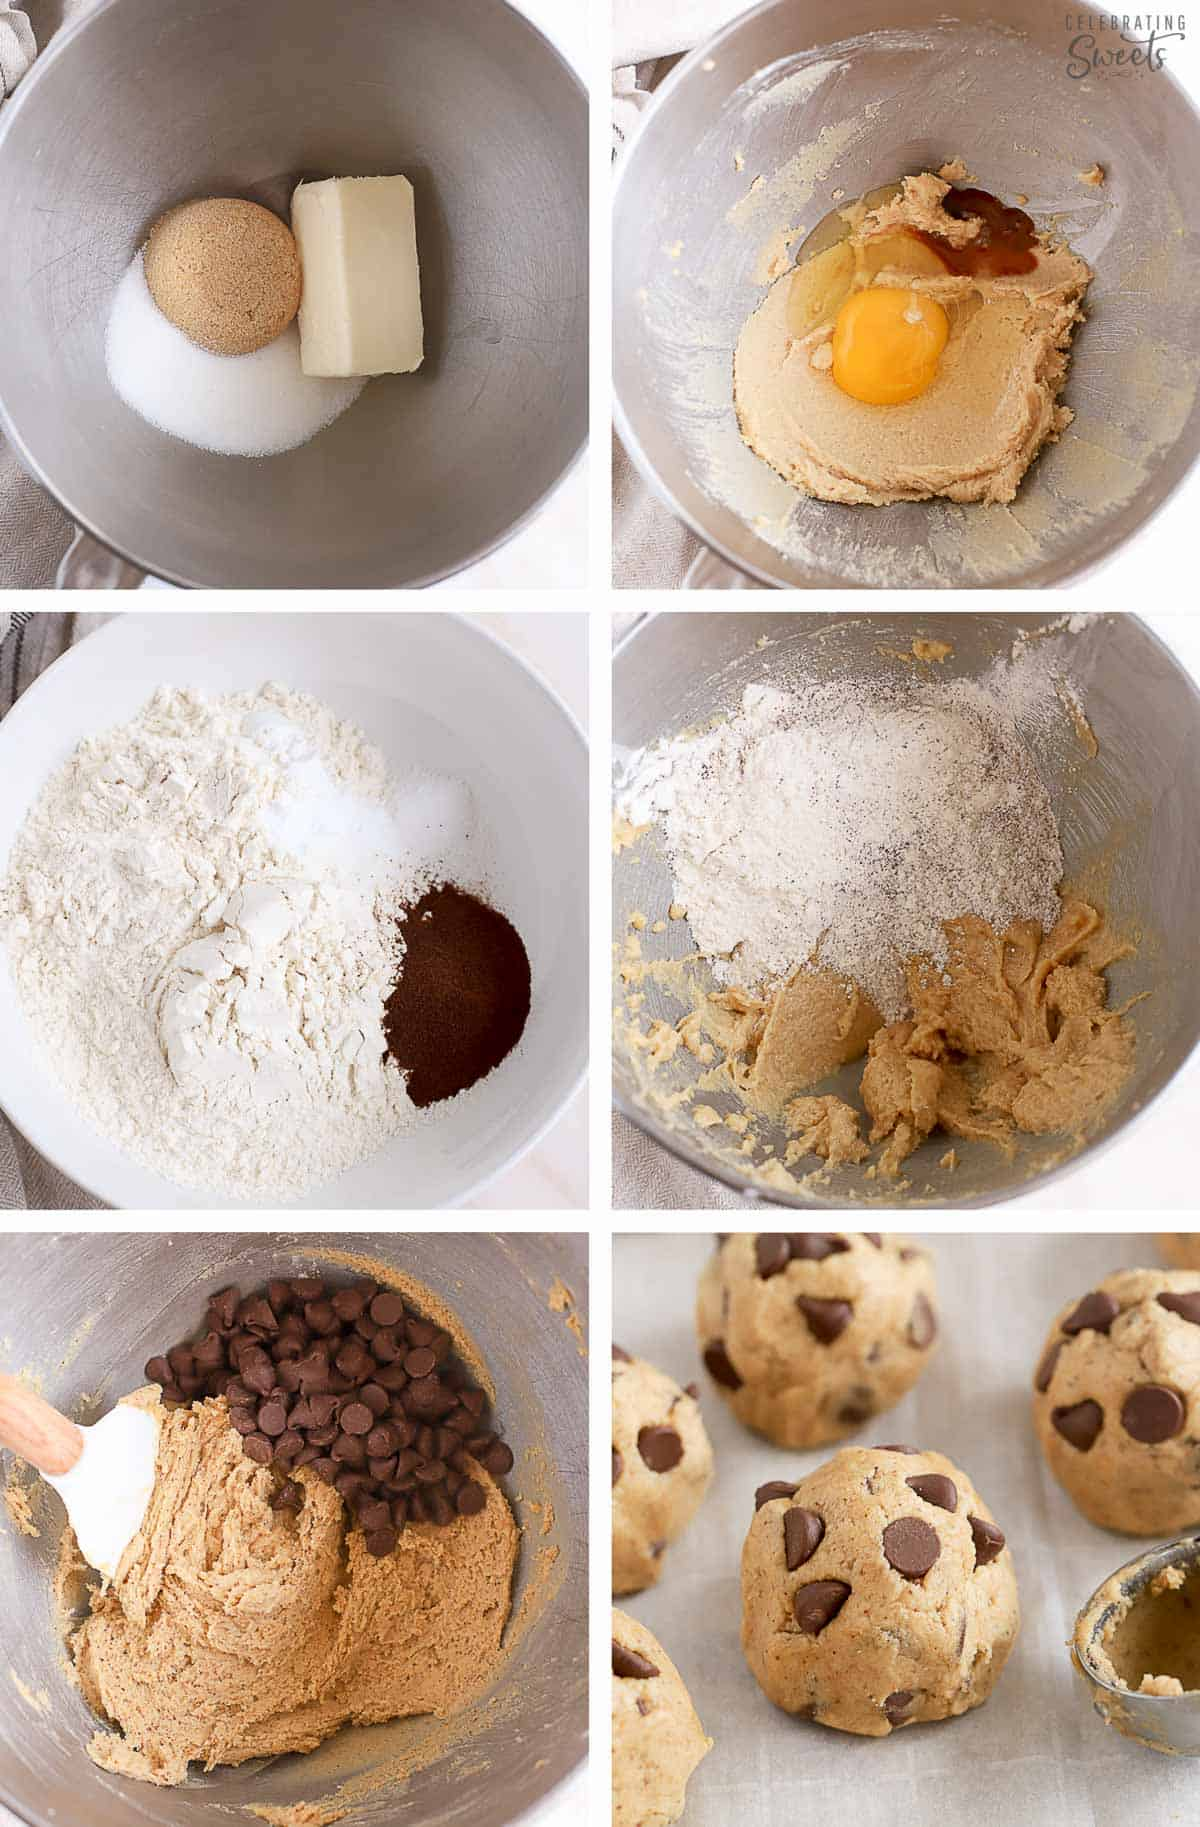 Collage of espresso chocolate chip cookie dough in a metal bowl and scooped onto a baking sheet.